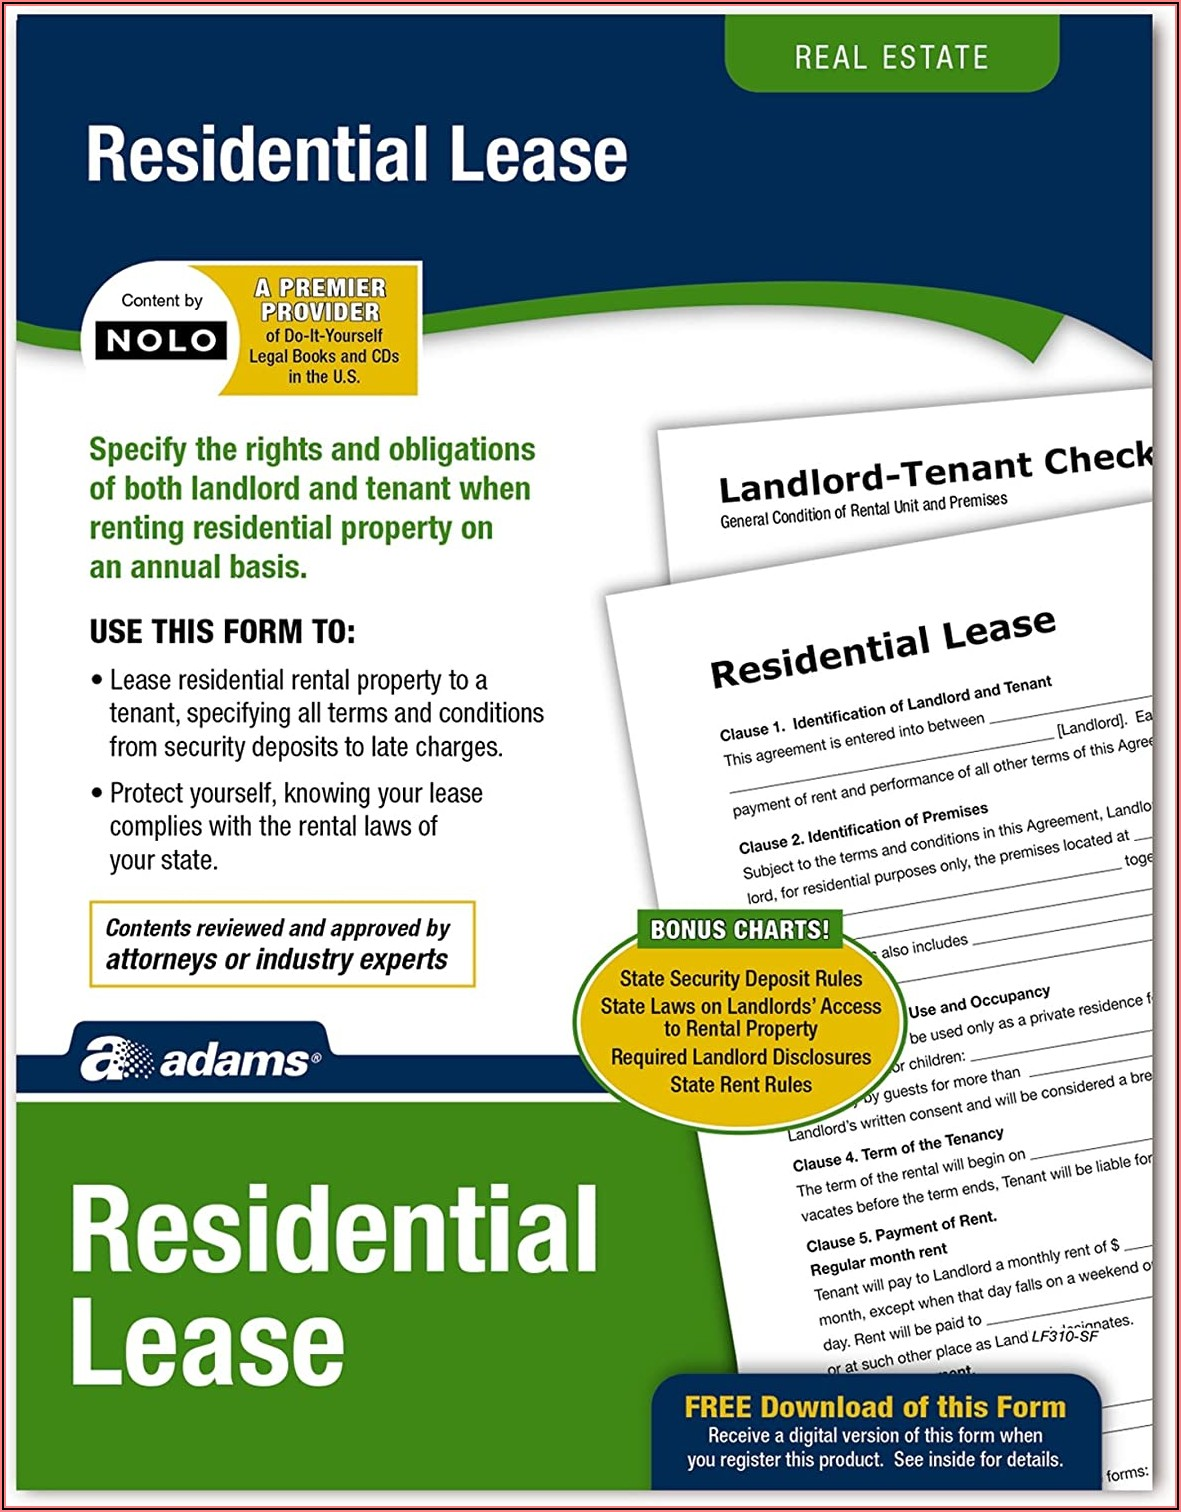 Adams Residential Lease Form Download